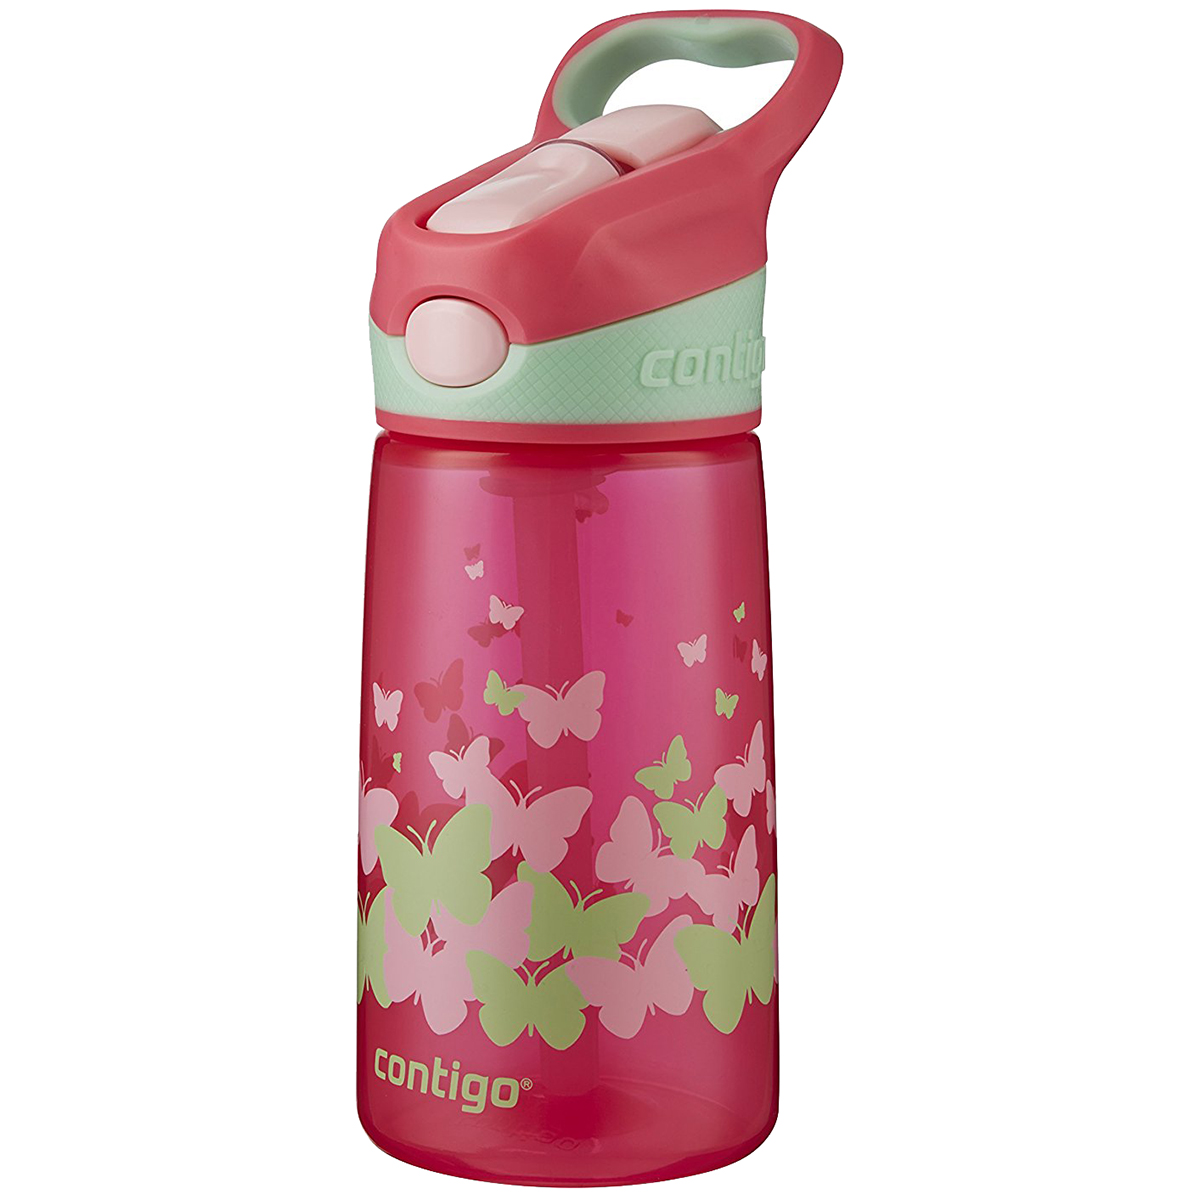 Contigo-14-oz-Kid-039-s-Striker-Autospout-Water-Bottle Indexbild 48